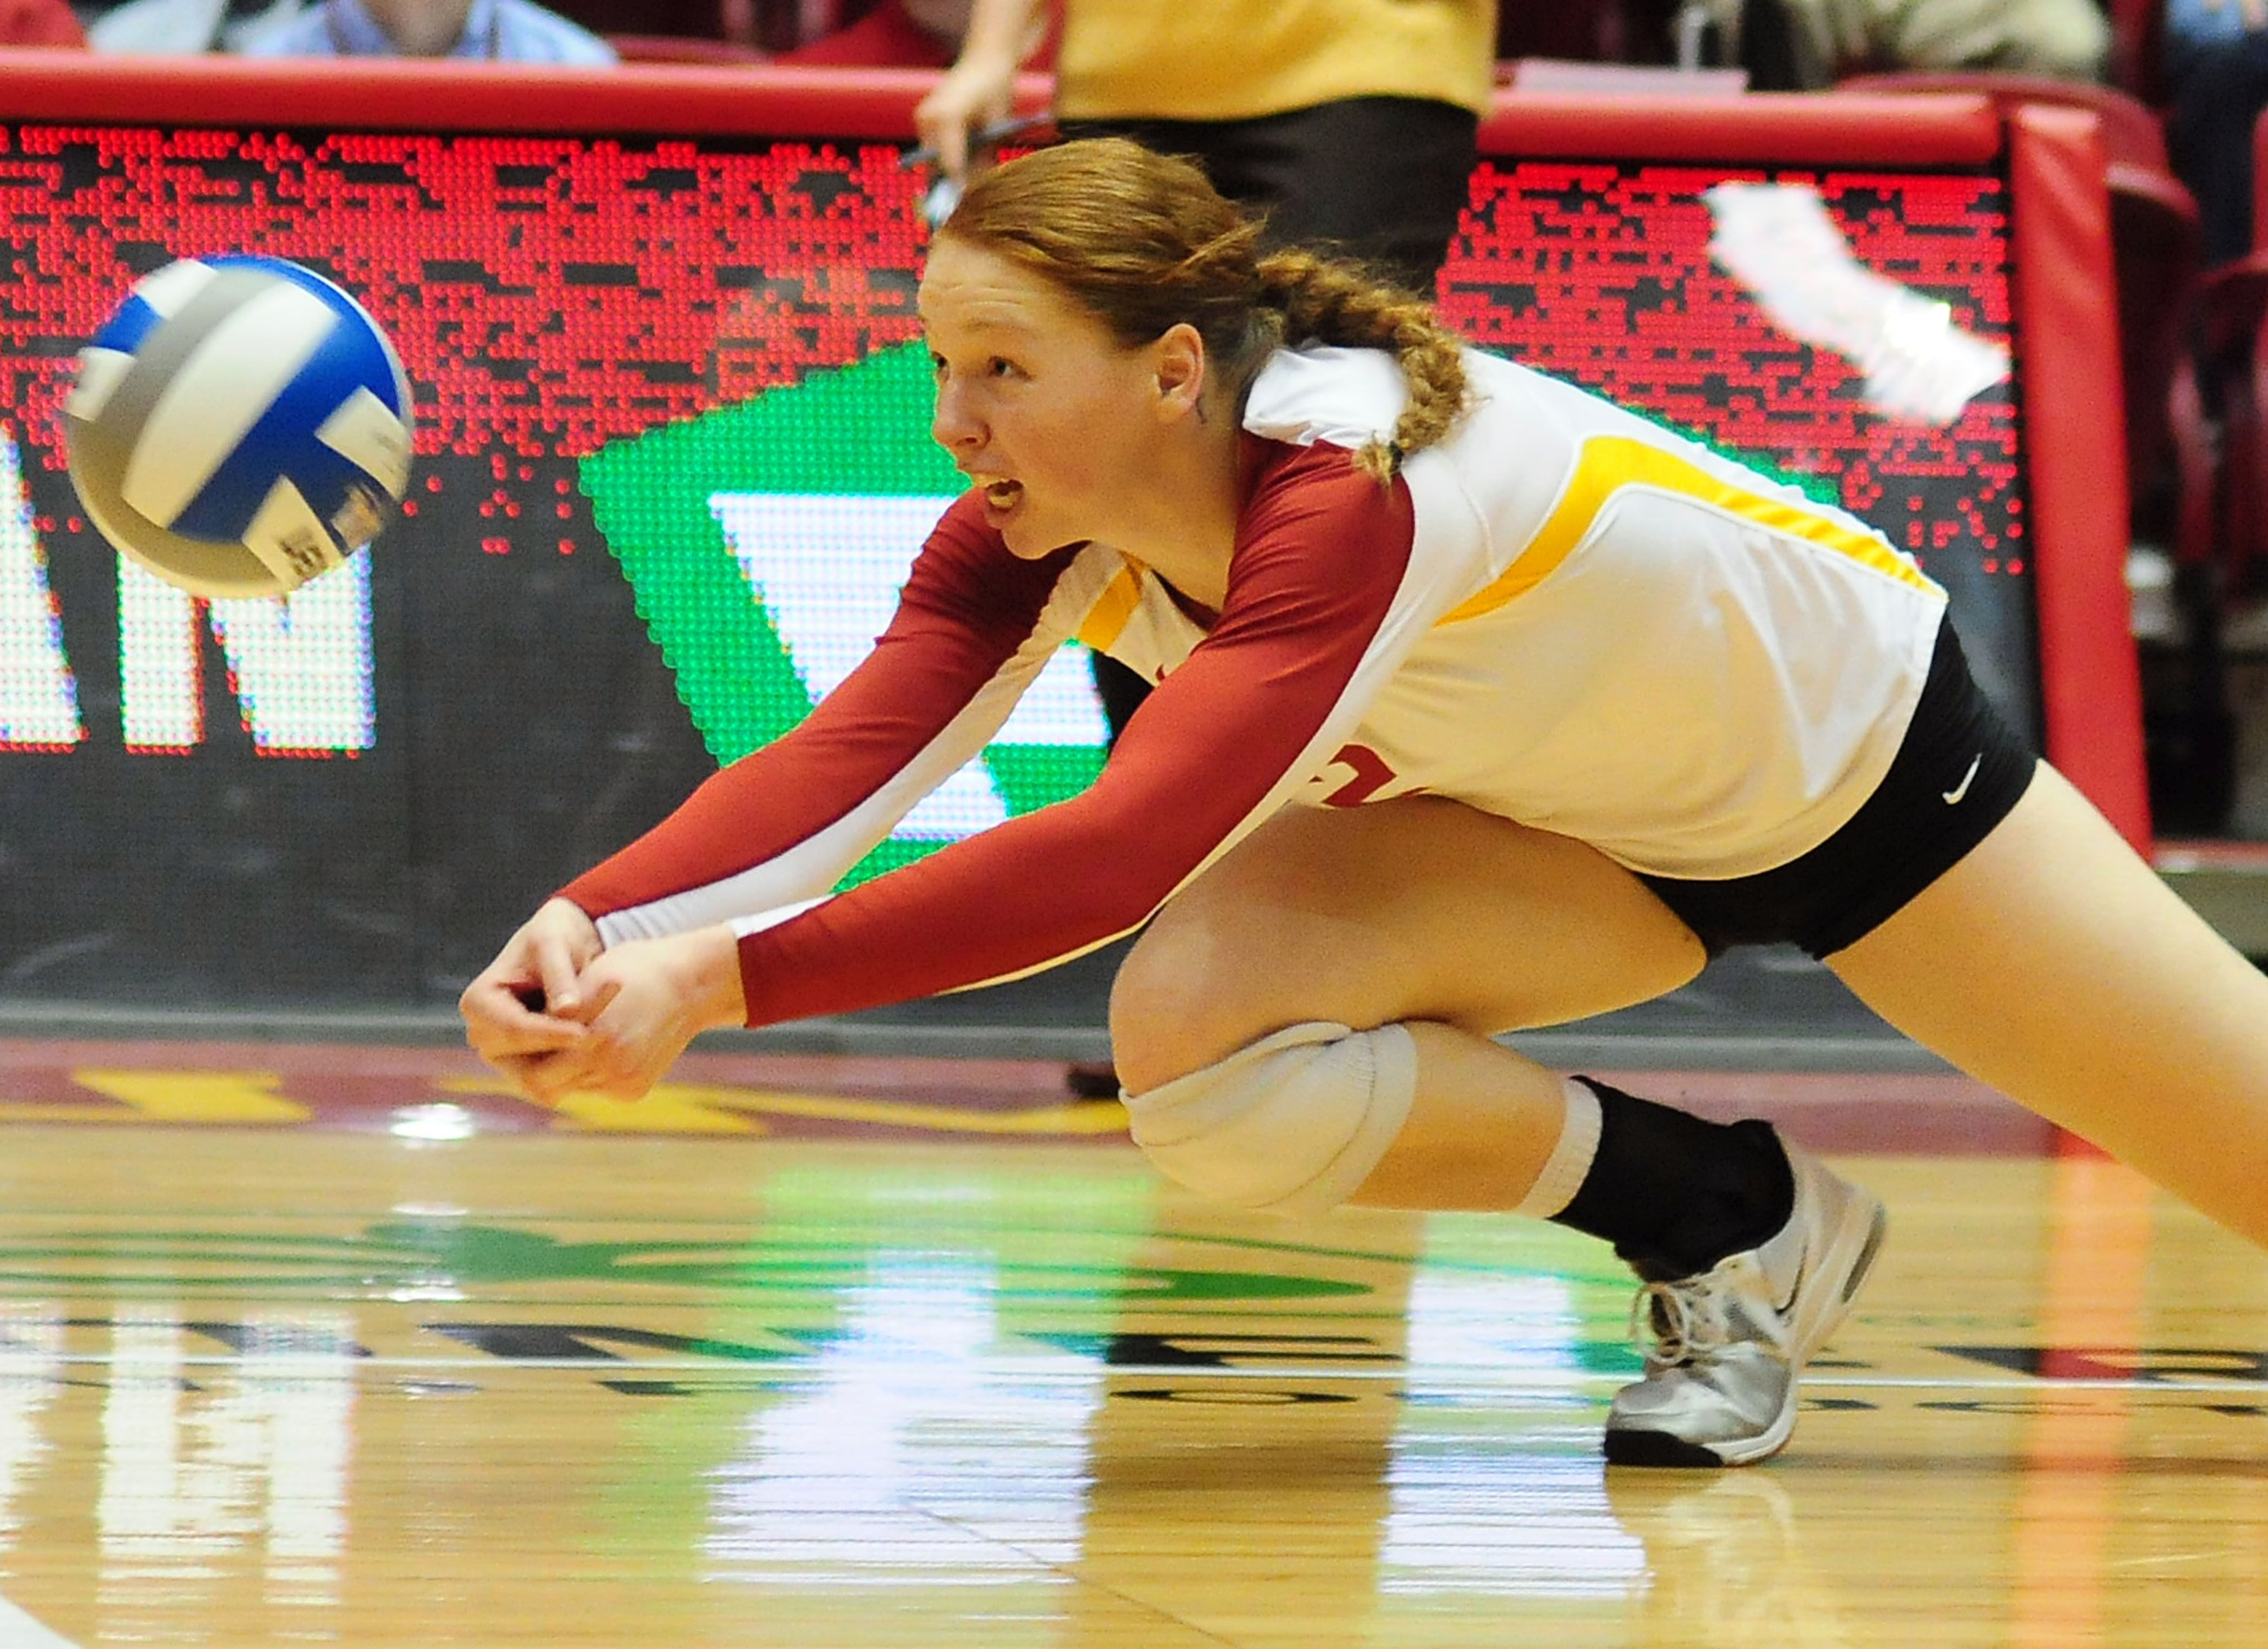 Iowa State Sophomore Mackenzie Bigbee Digs The Volleyball Against Kansas University Wednesday At Hilton Coliseum In Ames P Iowa State Cyclones Iowa State Iowa